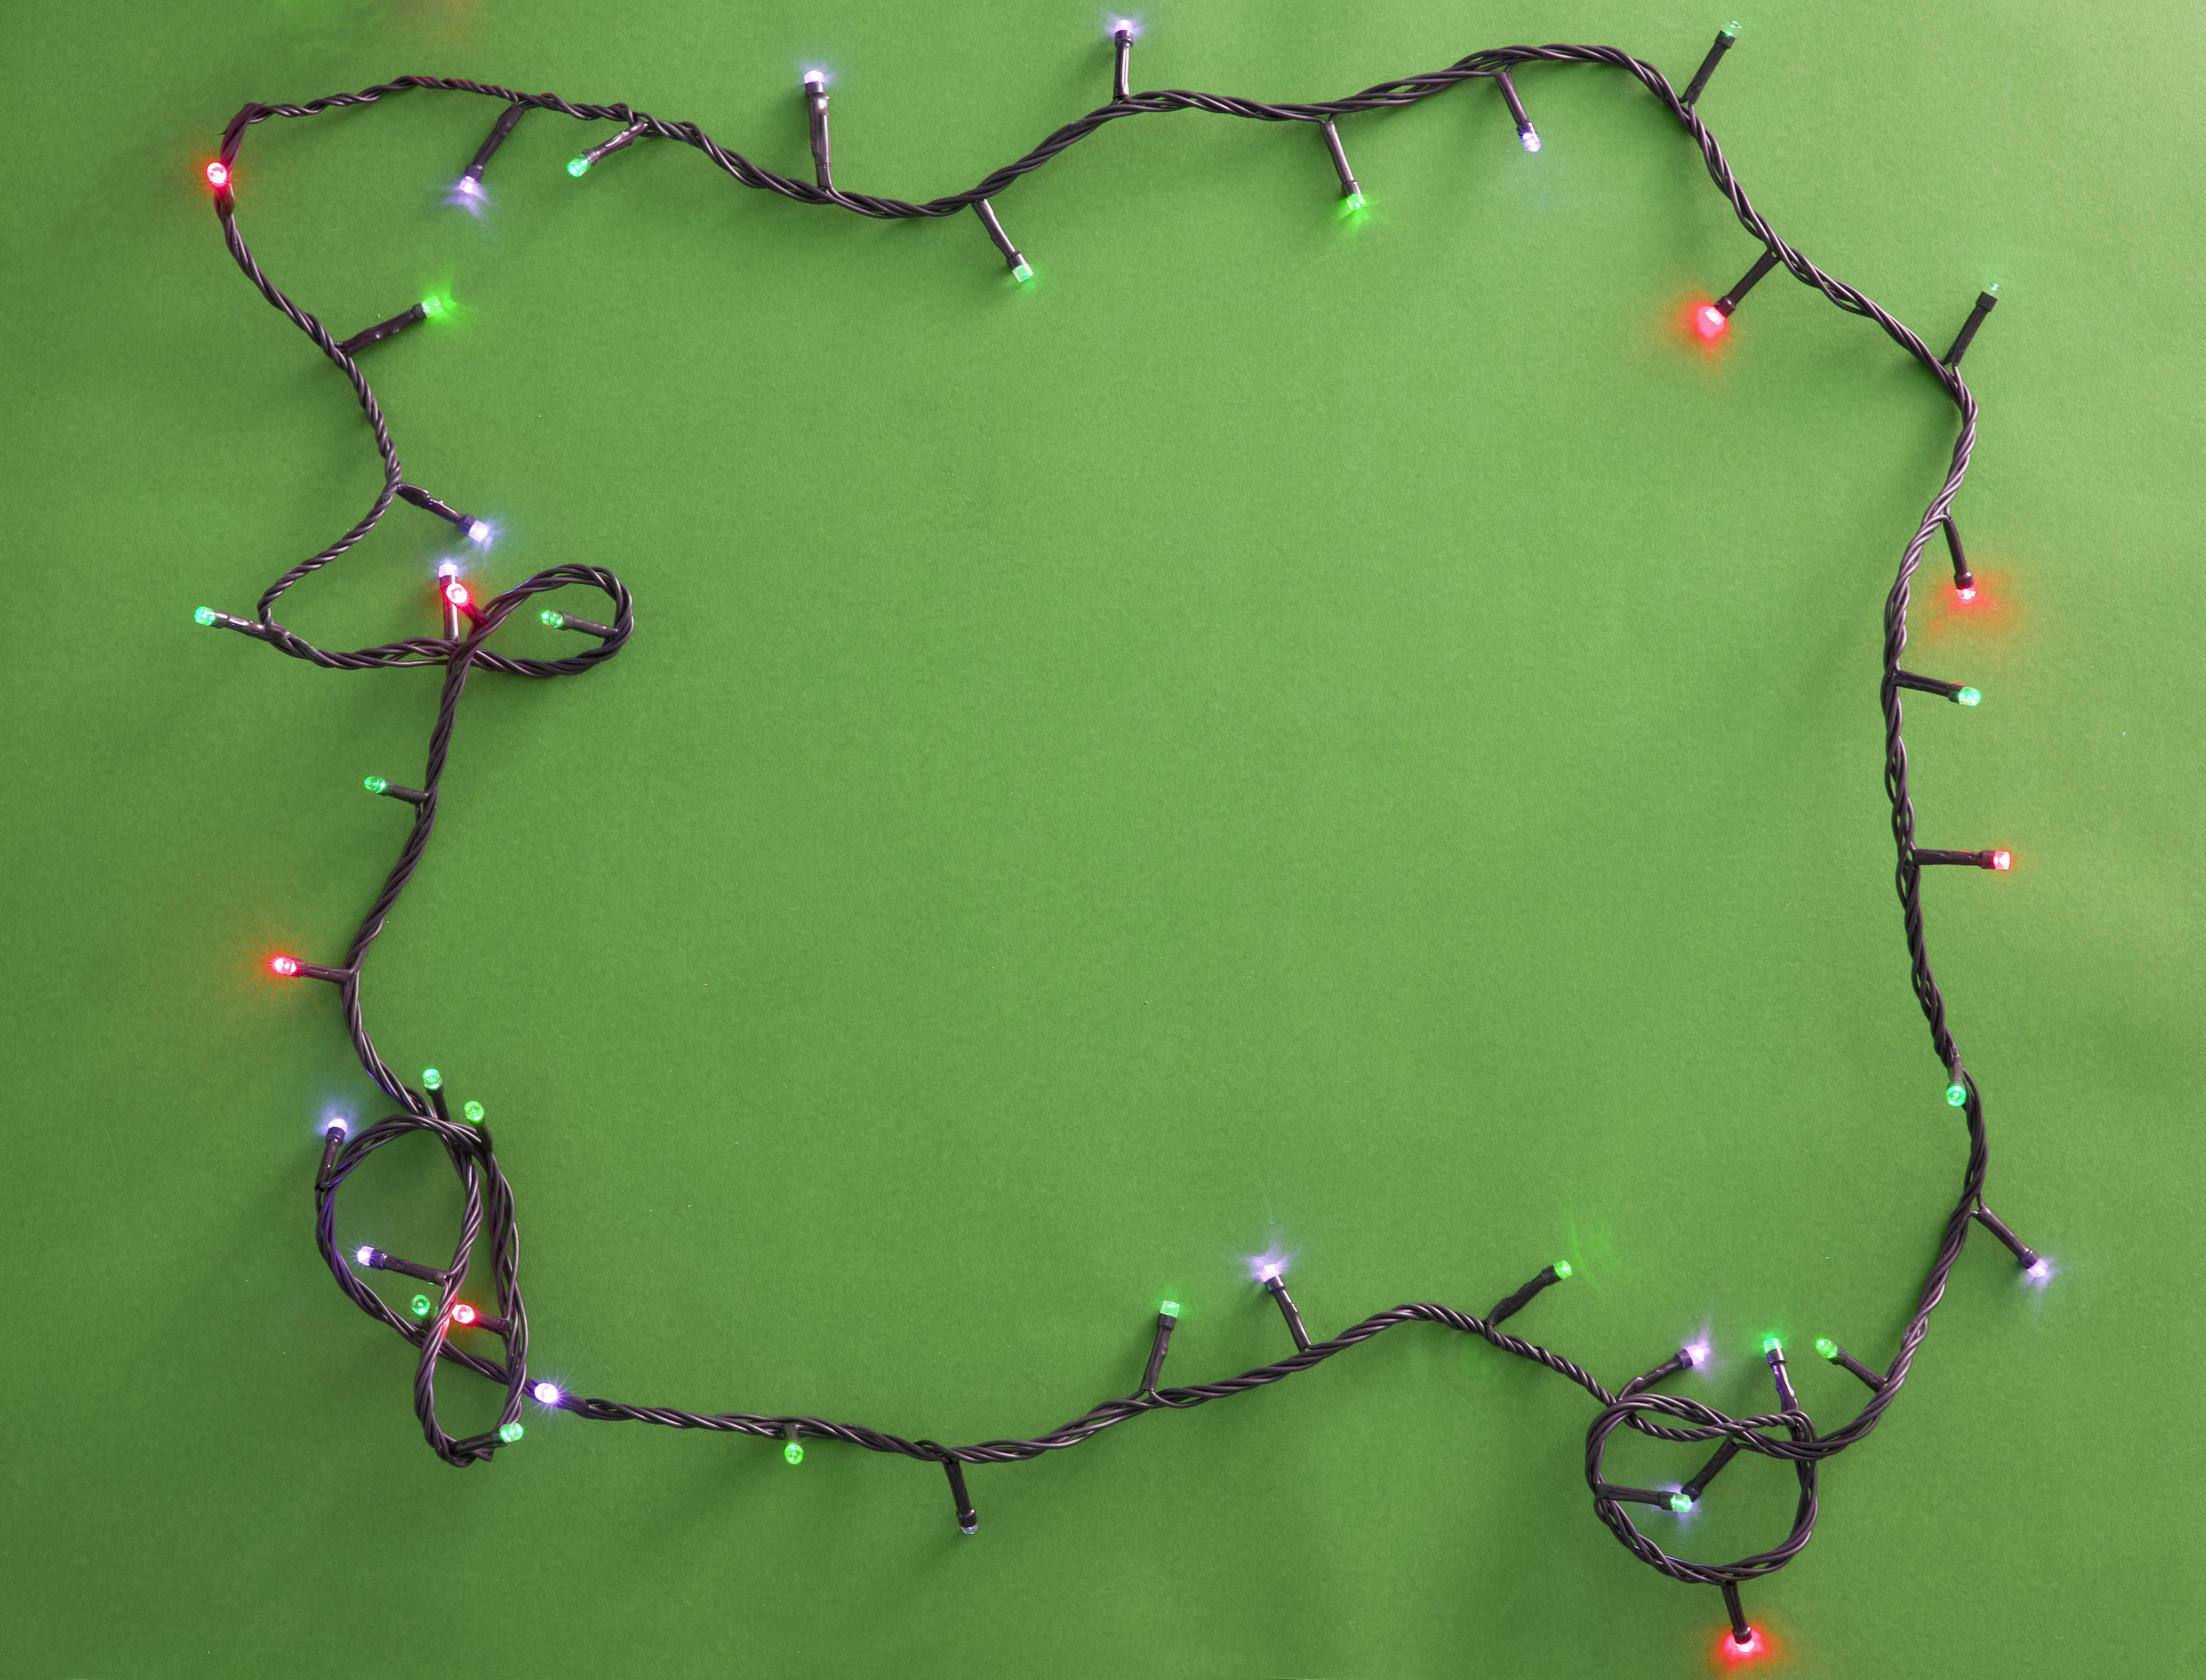 Festive lighted garland on green background. From above